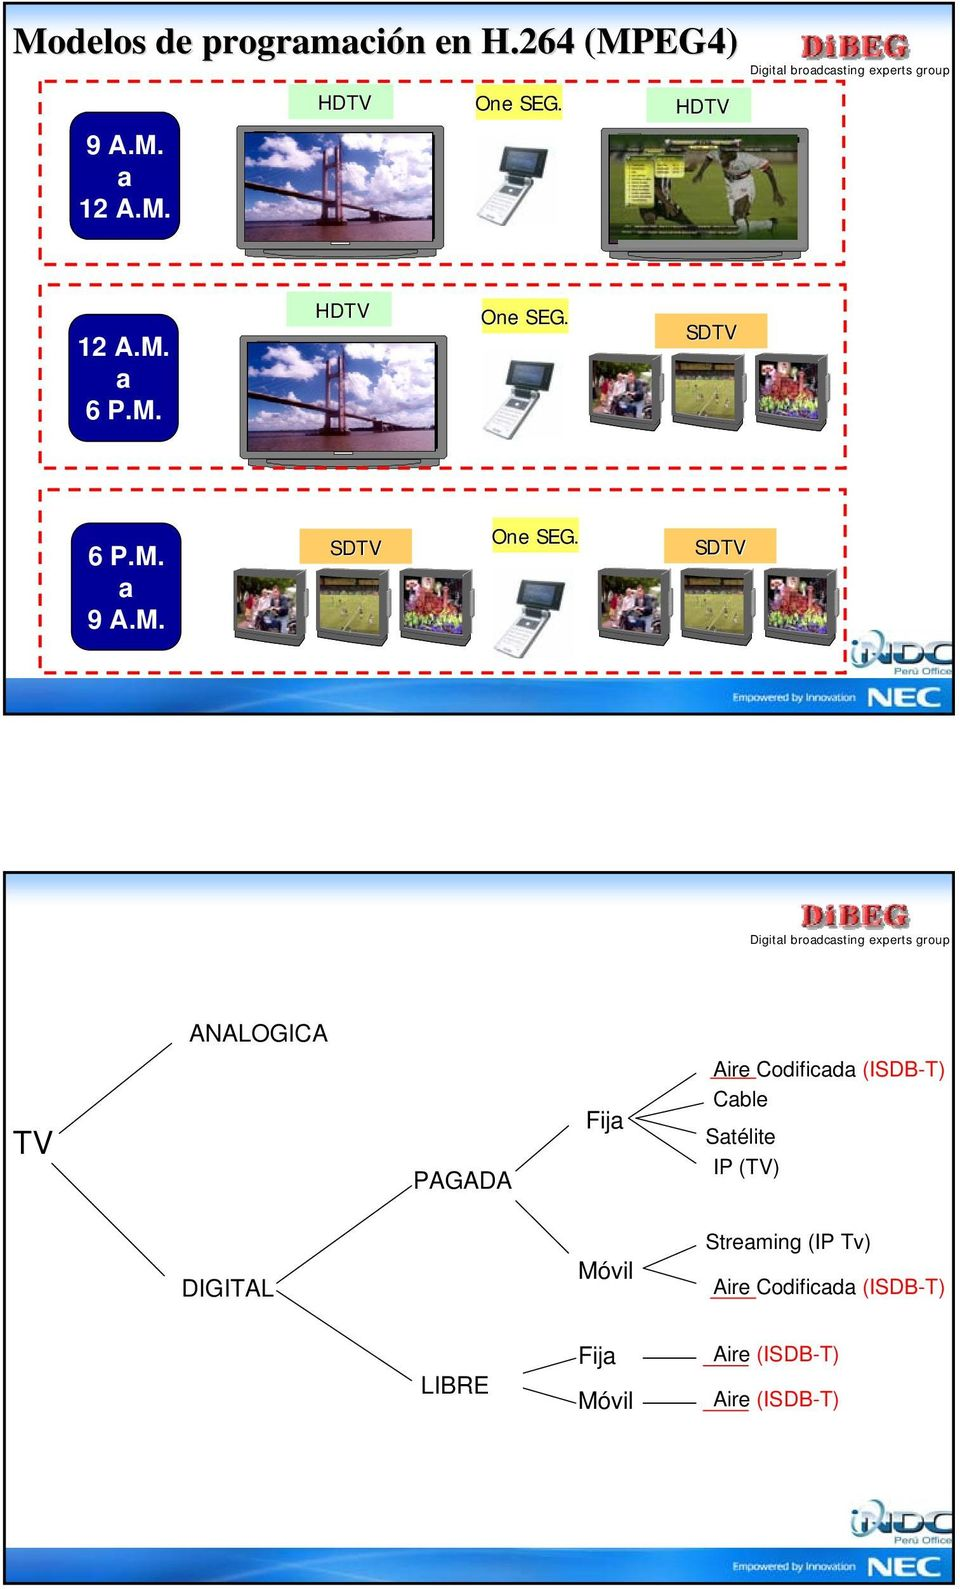 SDTV ANALOGICA TV PAGADA Fija Aire Codificada (ISDB-T) Cable Satélite IP (TV)